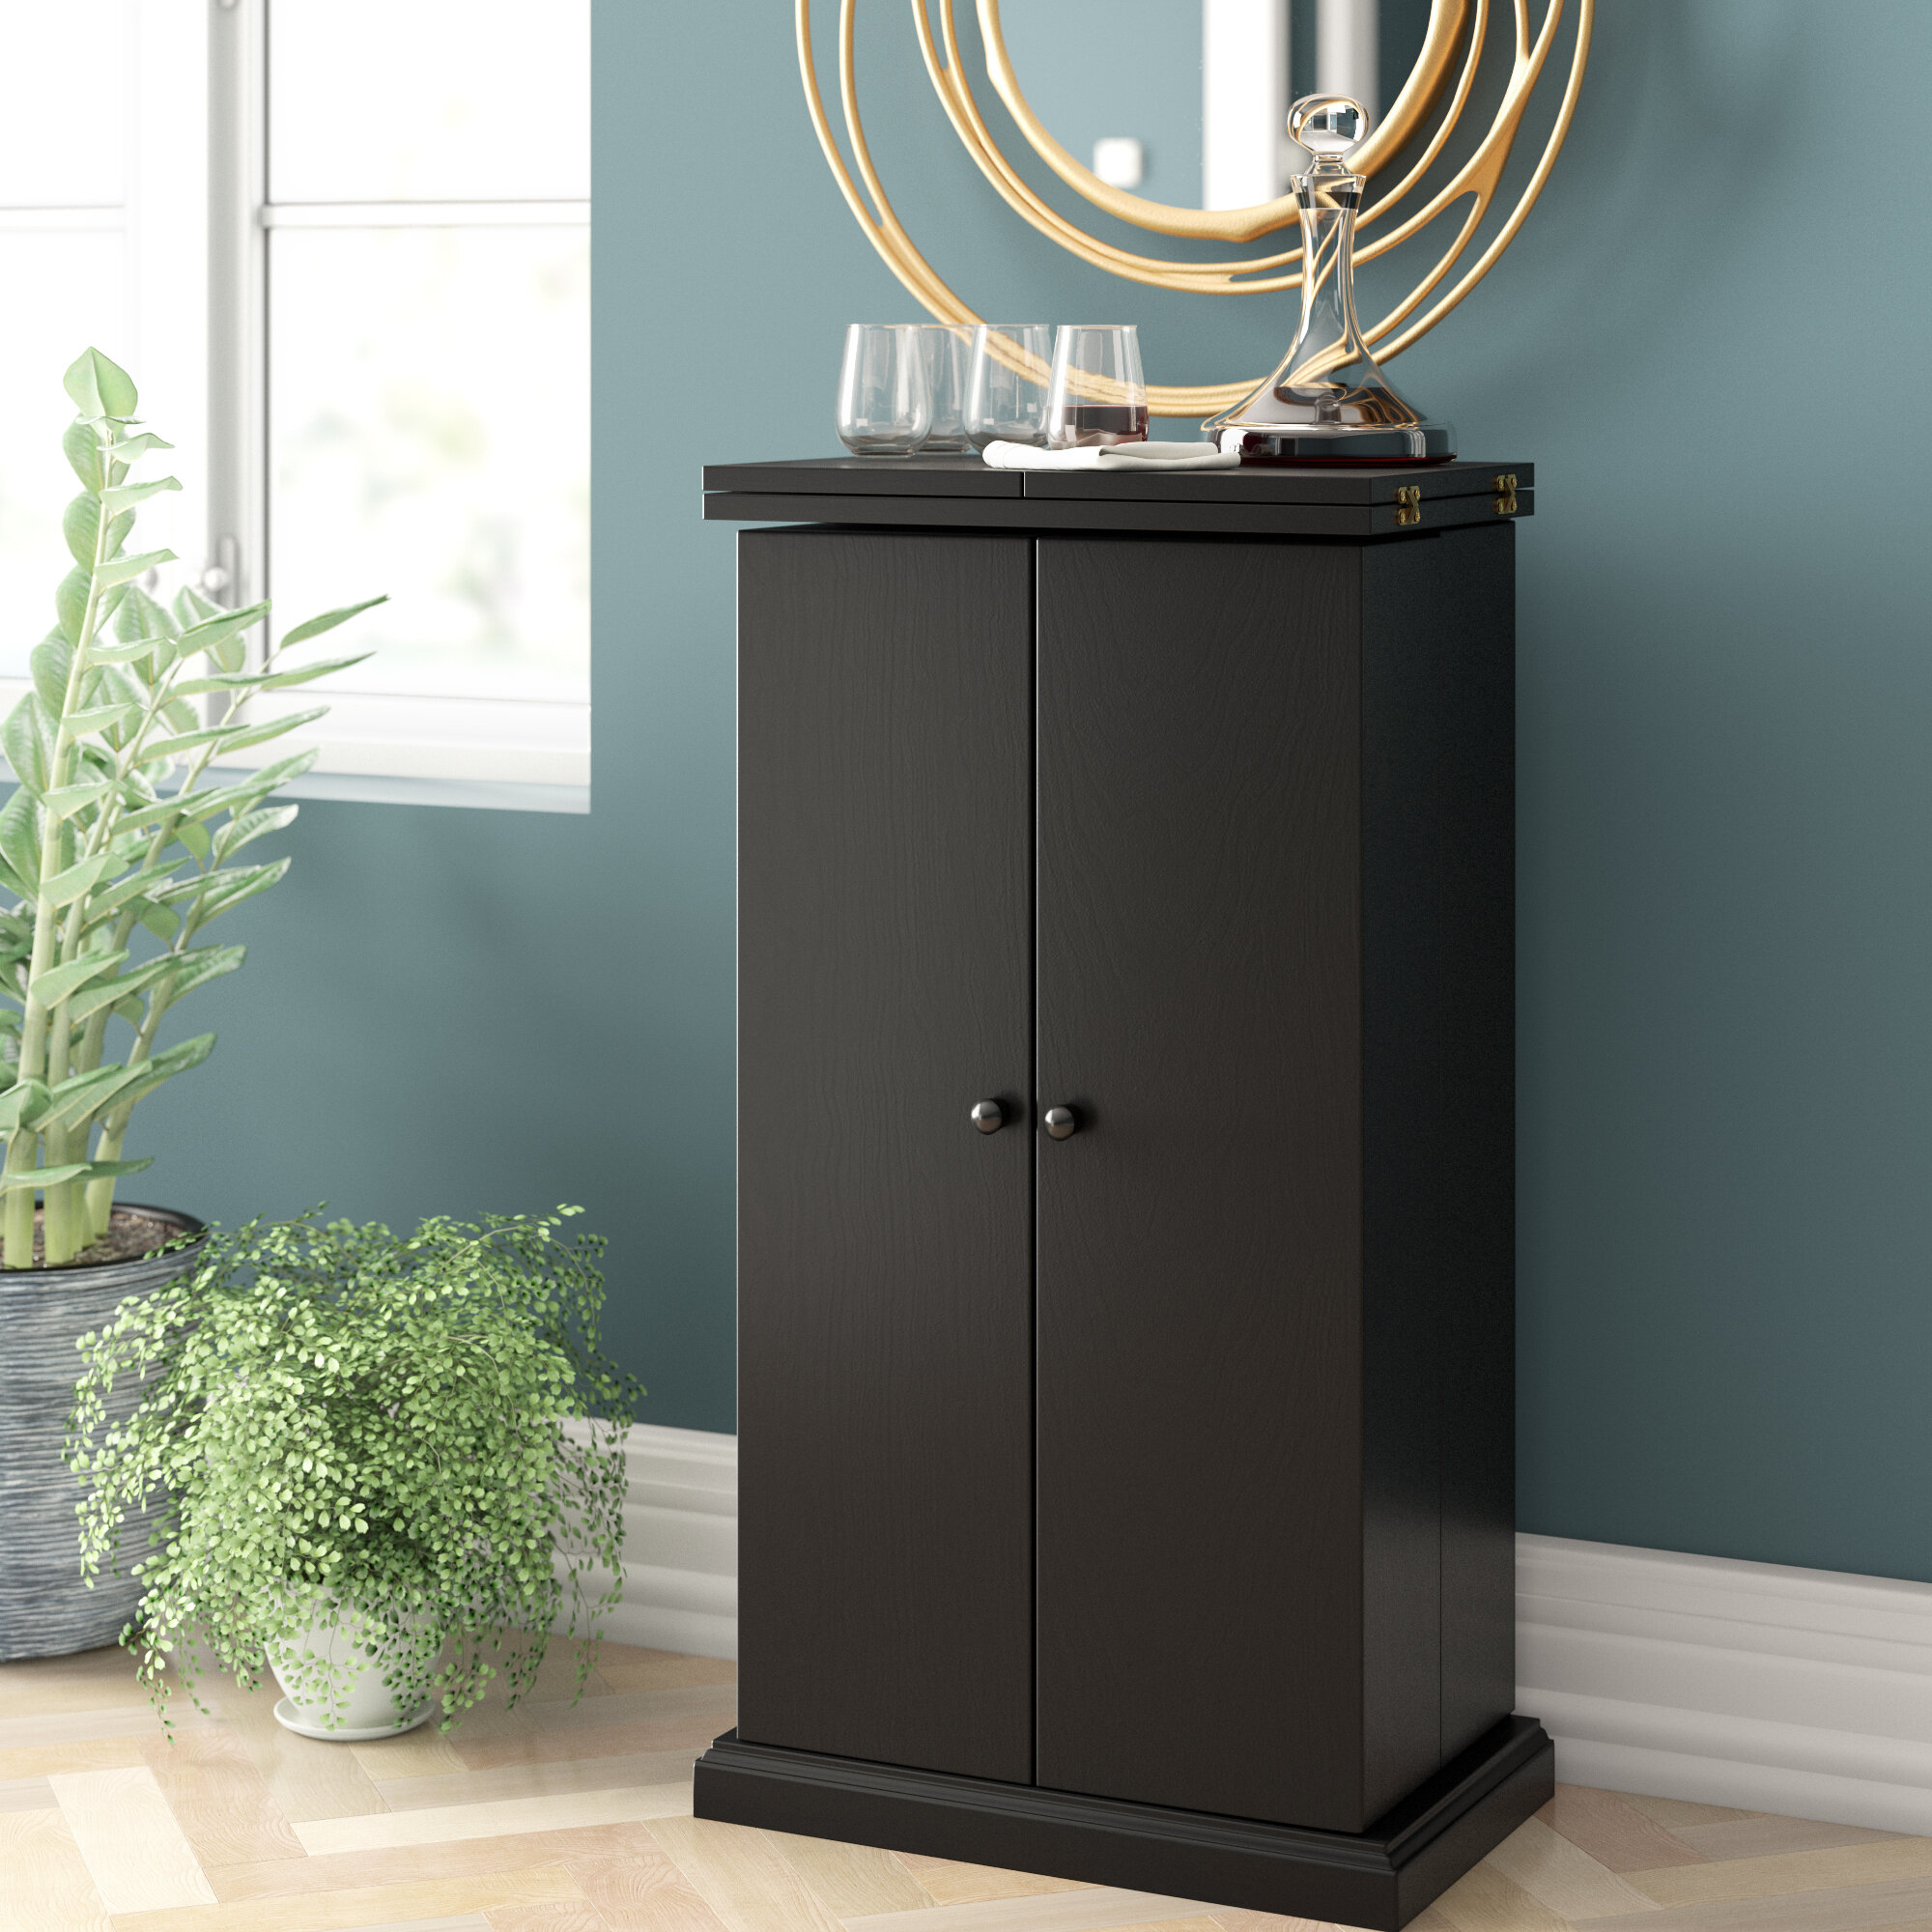 Home Haus Mini Bar Cabinet Reviews Wayfair Co Uk